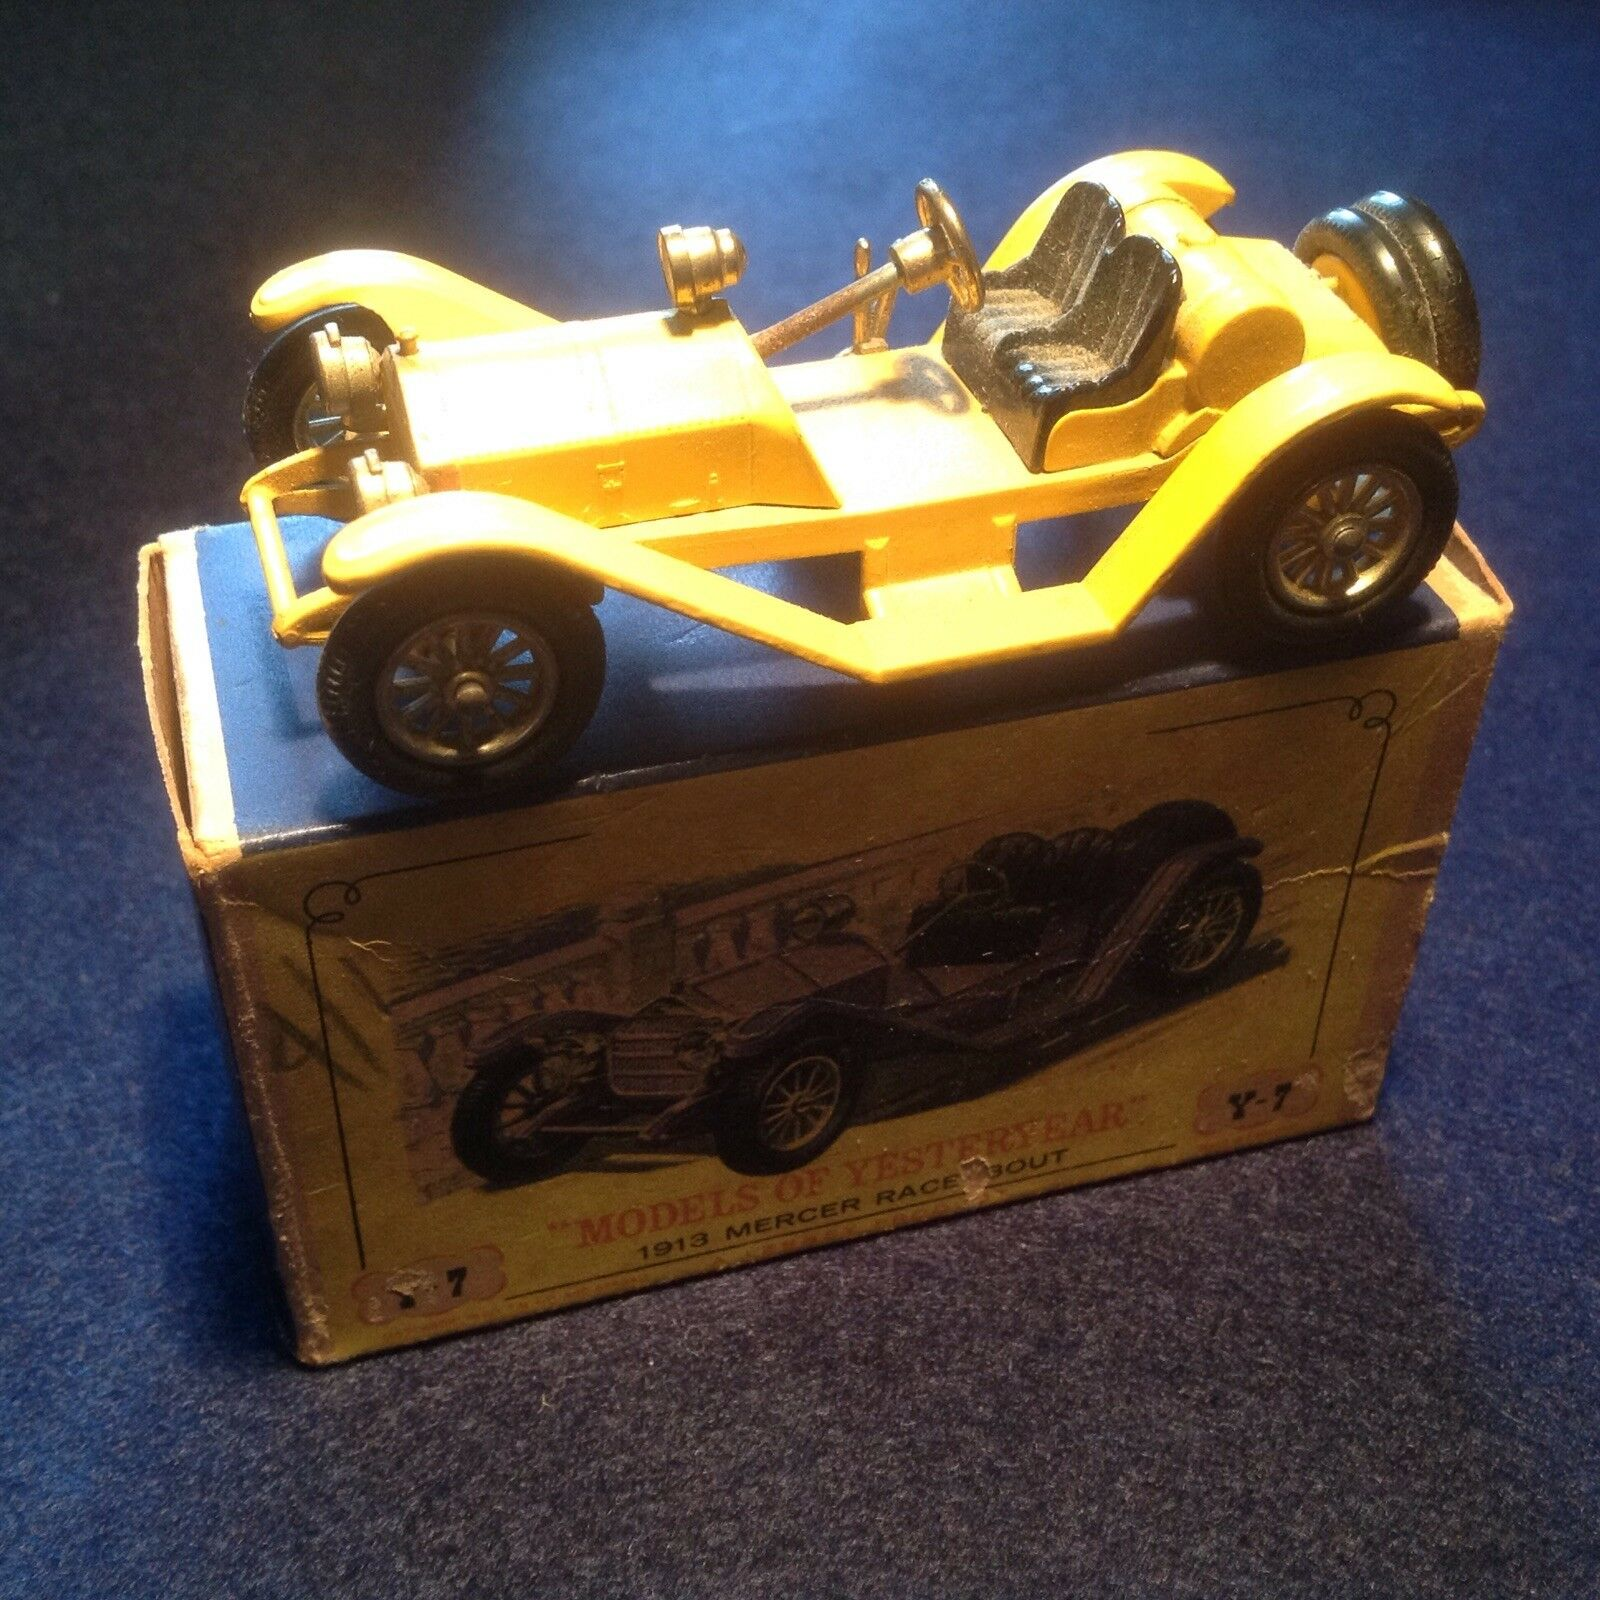 MATCHBOX 1913 MERCER RACEABOUT Y7-2 MODELS OF YESTERYEAR MINT IN  ORIGINAL BOX